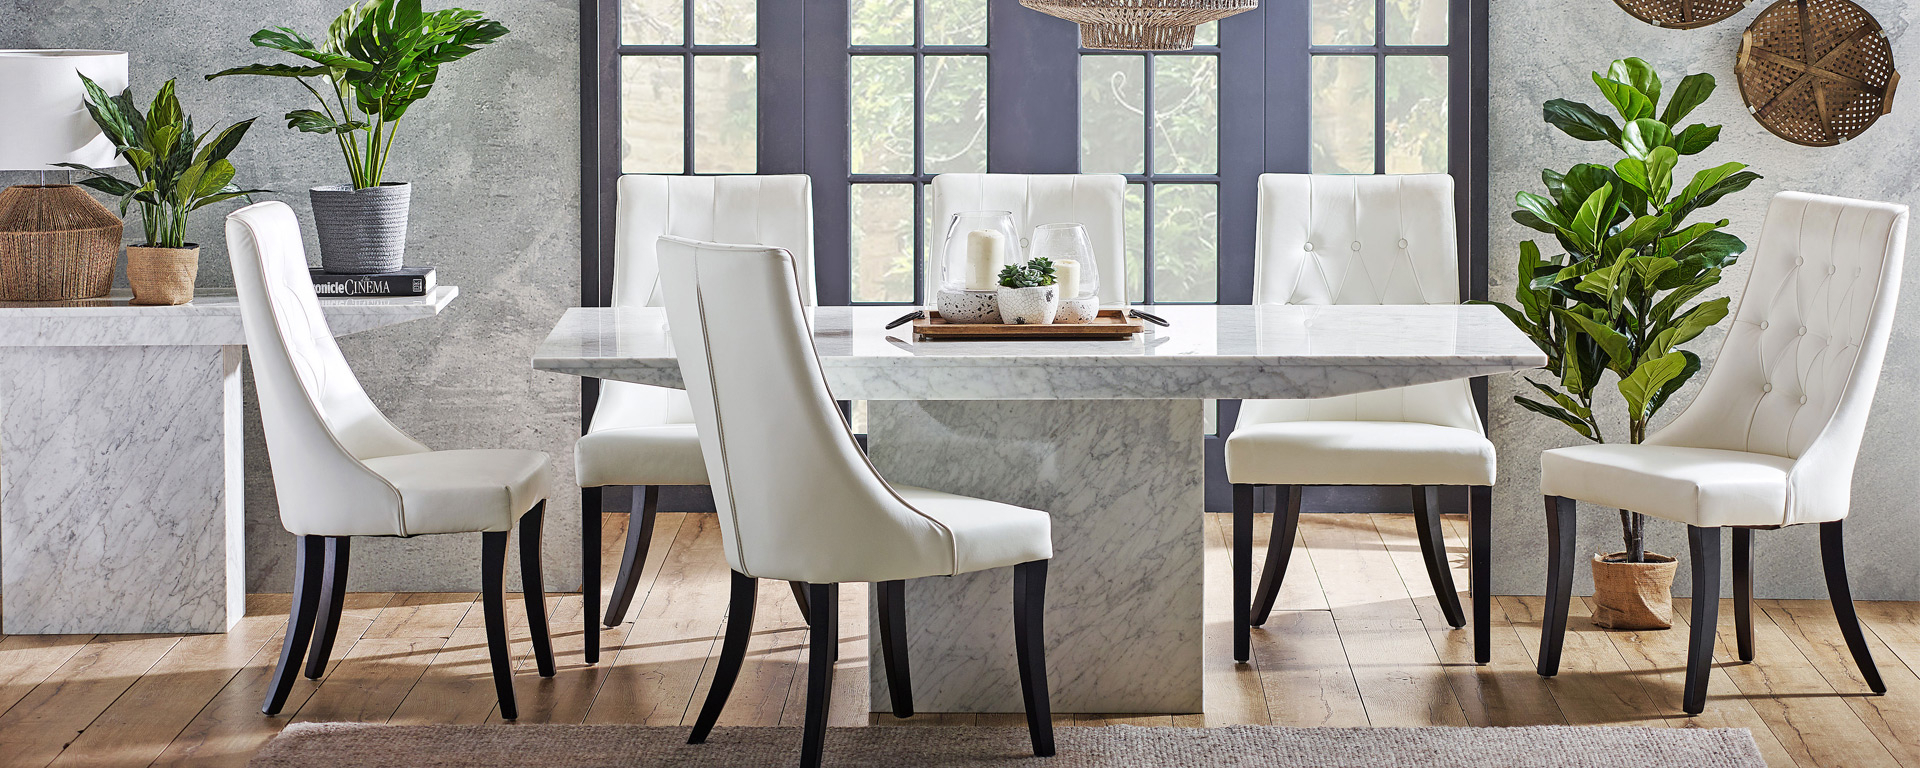 Dining Room Goals: 5 Trending Concrete And Stone Dining Intended For Most Popular Christie Round Marble Dining Tables (View 13 of 25)